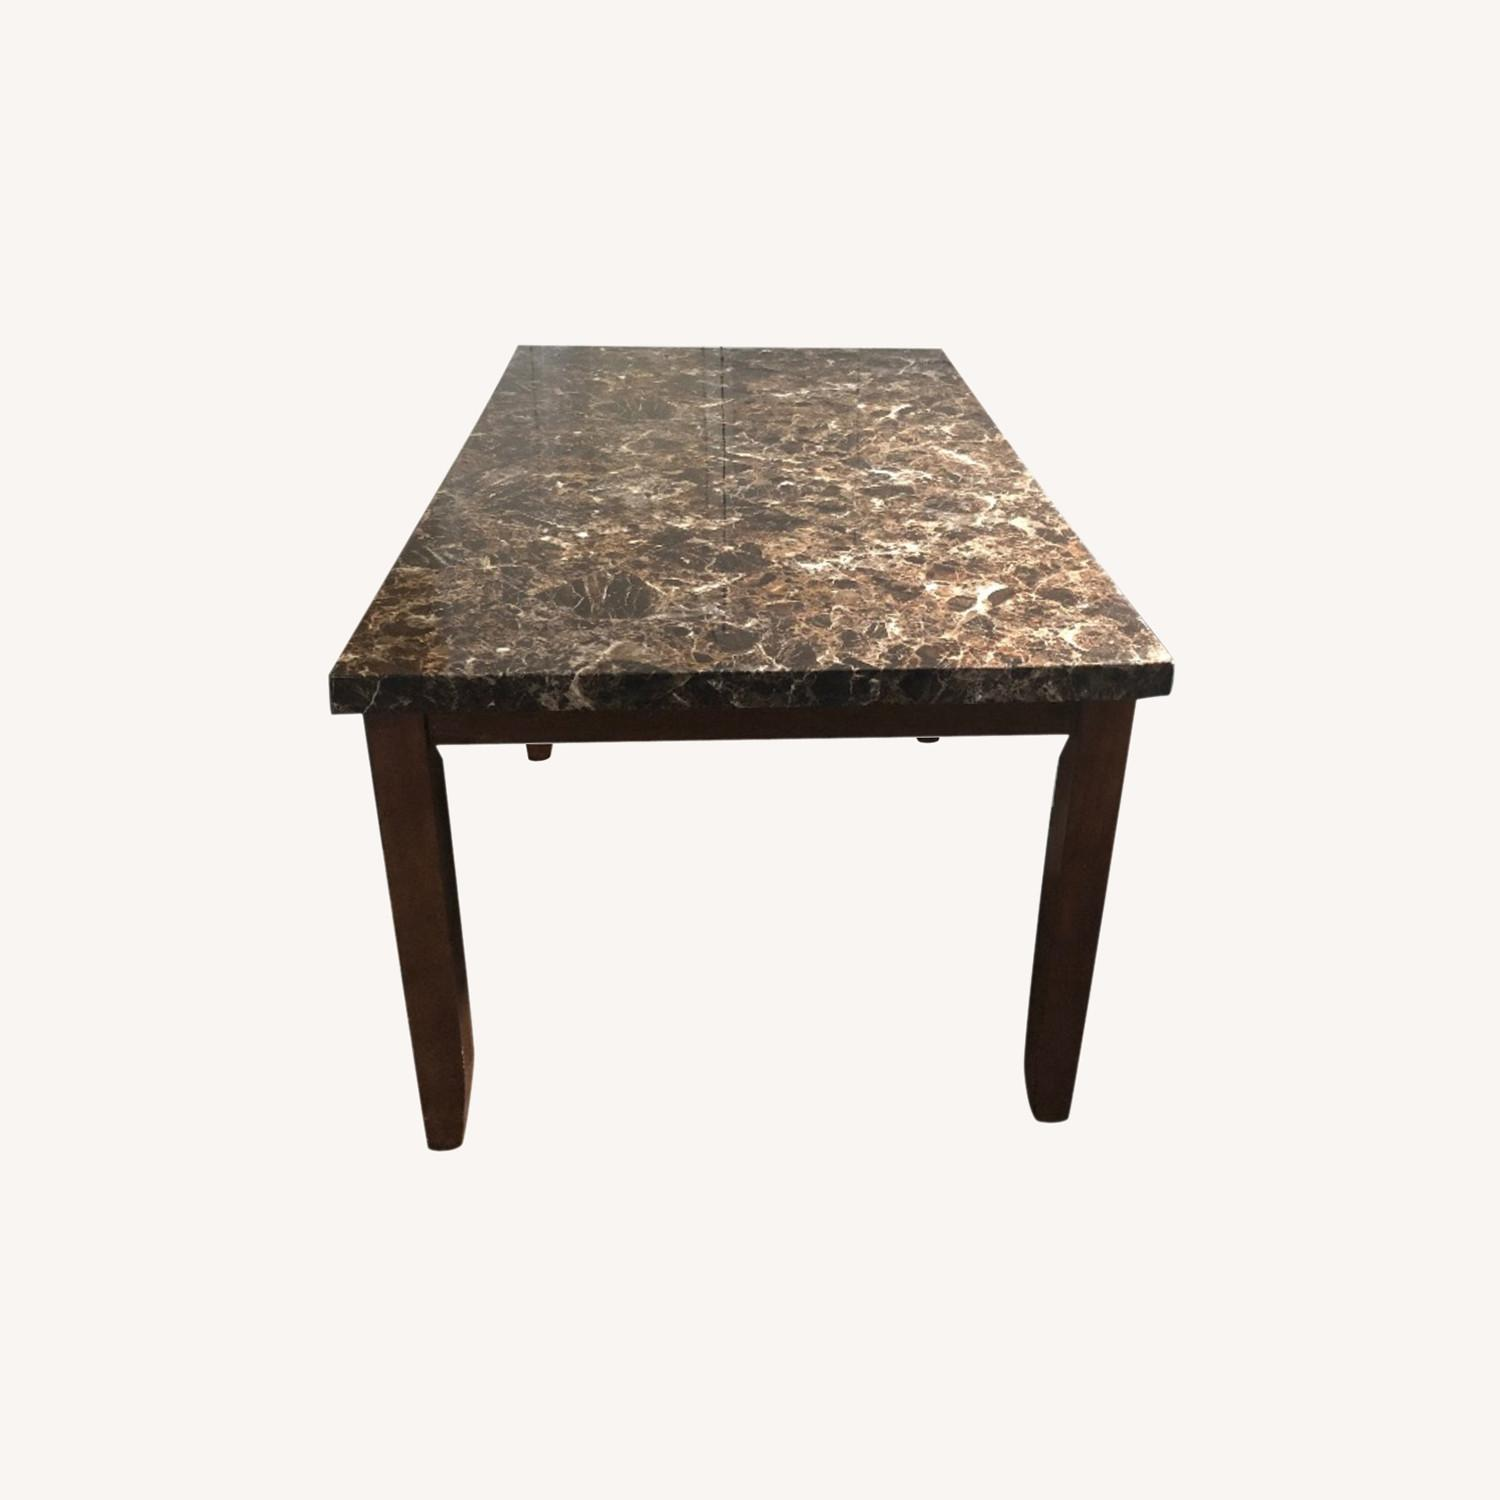 Raymour & Flanigan Dining Table - image-0